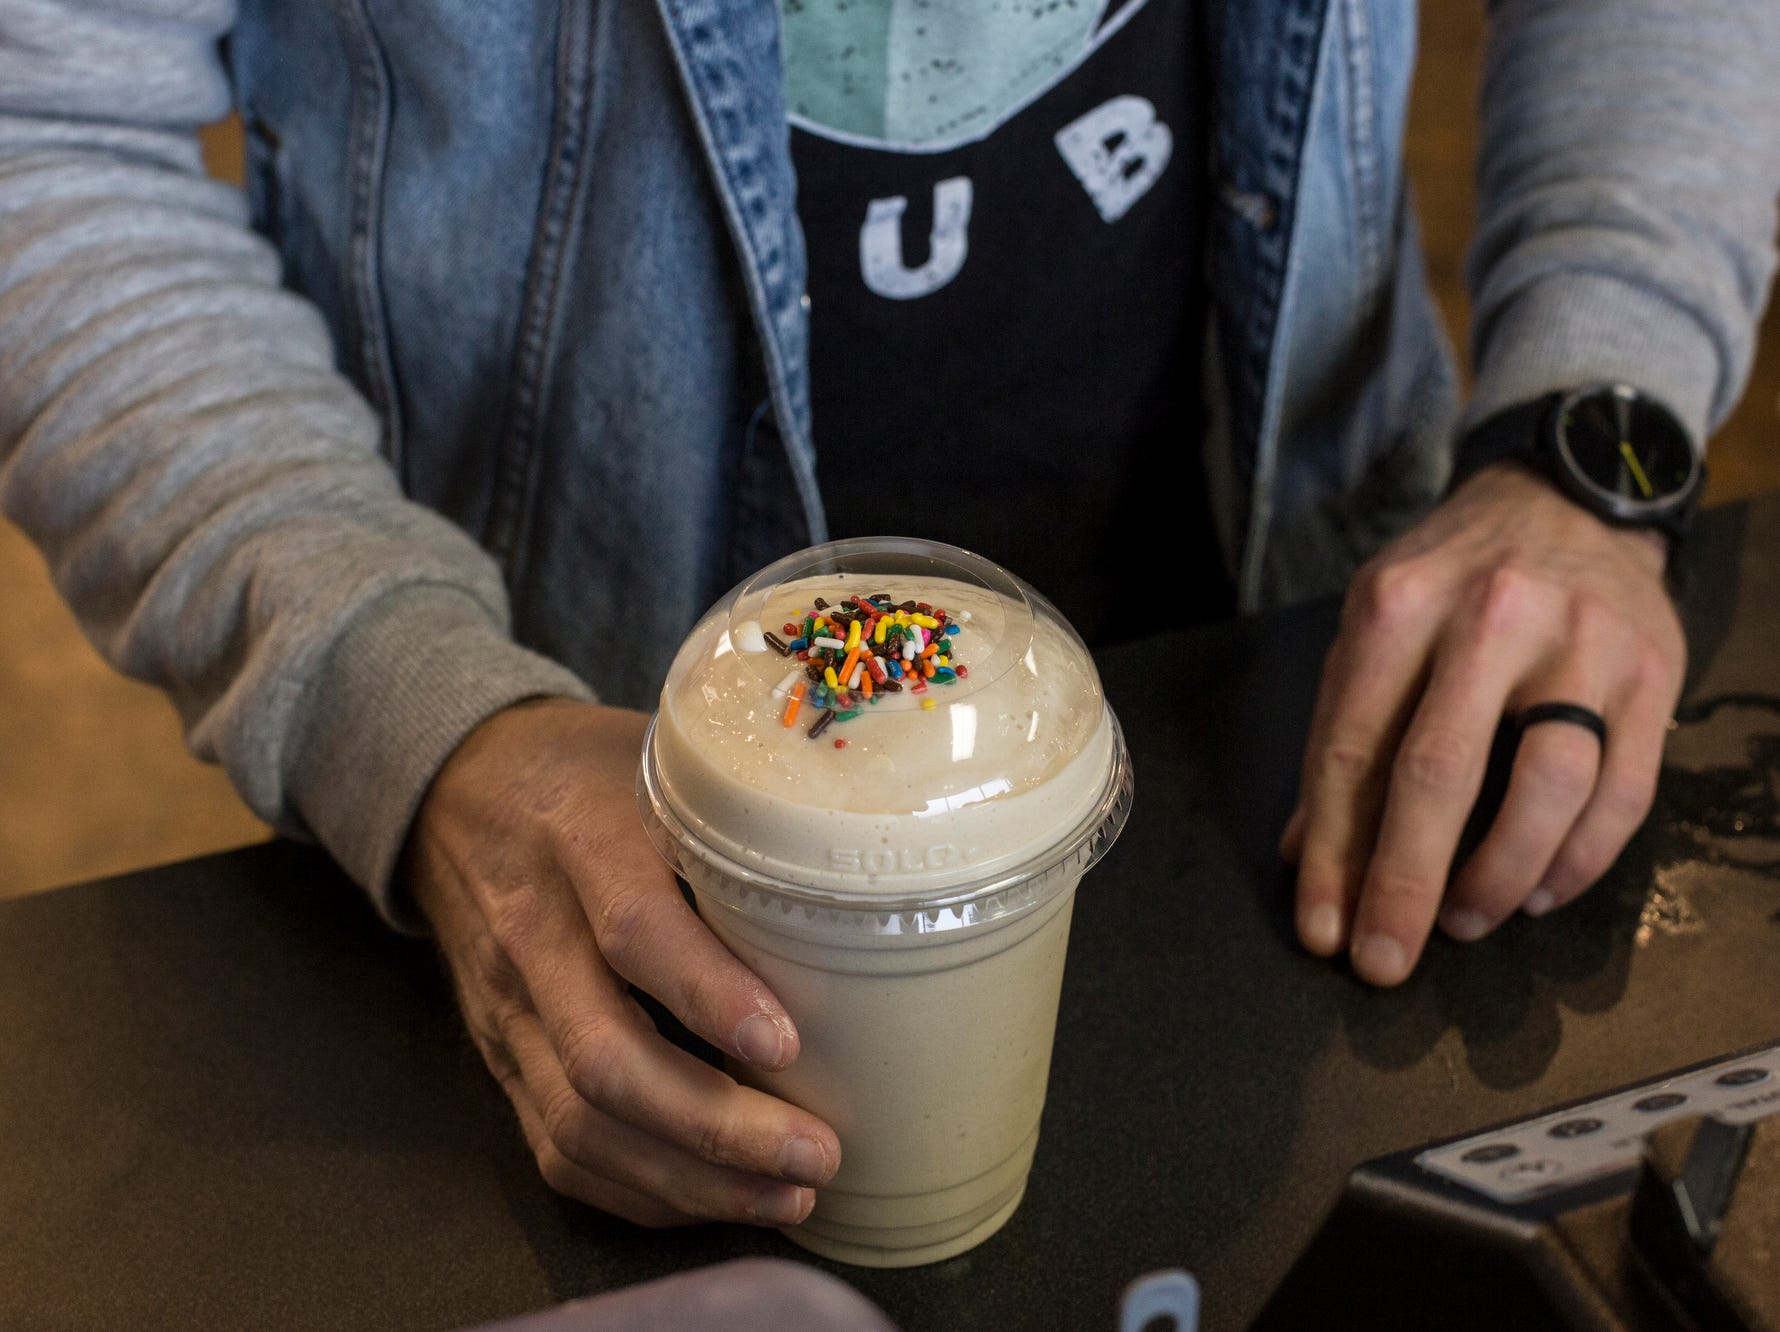 January 14 2019 - Seth McMurry creates a birthday cake shake at Nutrition Hub in Germantown. Nutrition Hub serves meal-replacement shakes, aloe shots, and energy teas.